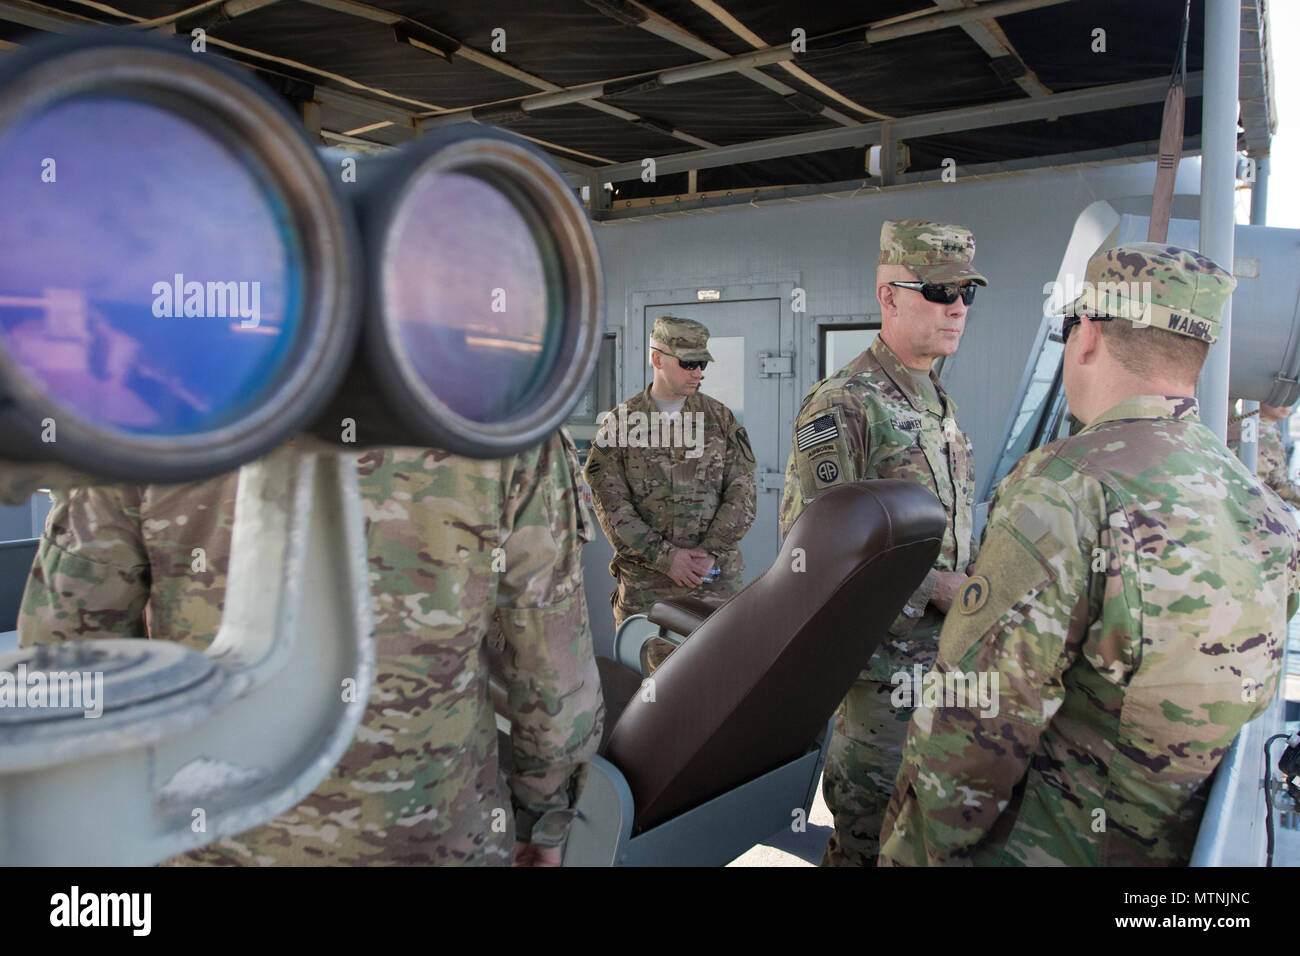 """U.S. Army Reserve Commanding General Lt. Gen. Charles D. Luckey tours the LSV-5 """"MG Charles P. Gross"""" during a tour of the Kuwait Naval Base and its capabilities in Kuwait, Jan. 10, 2017. (U.S. Army Photo by Staff Sgt. Dalton Smith) - Stock Image"""